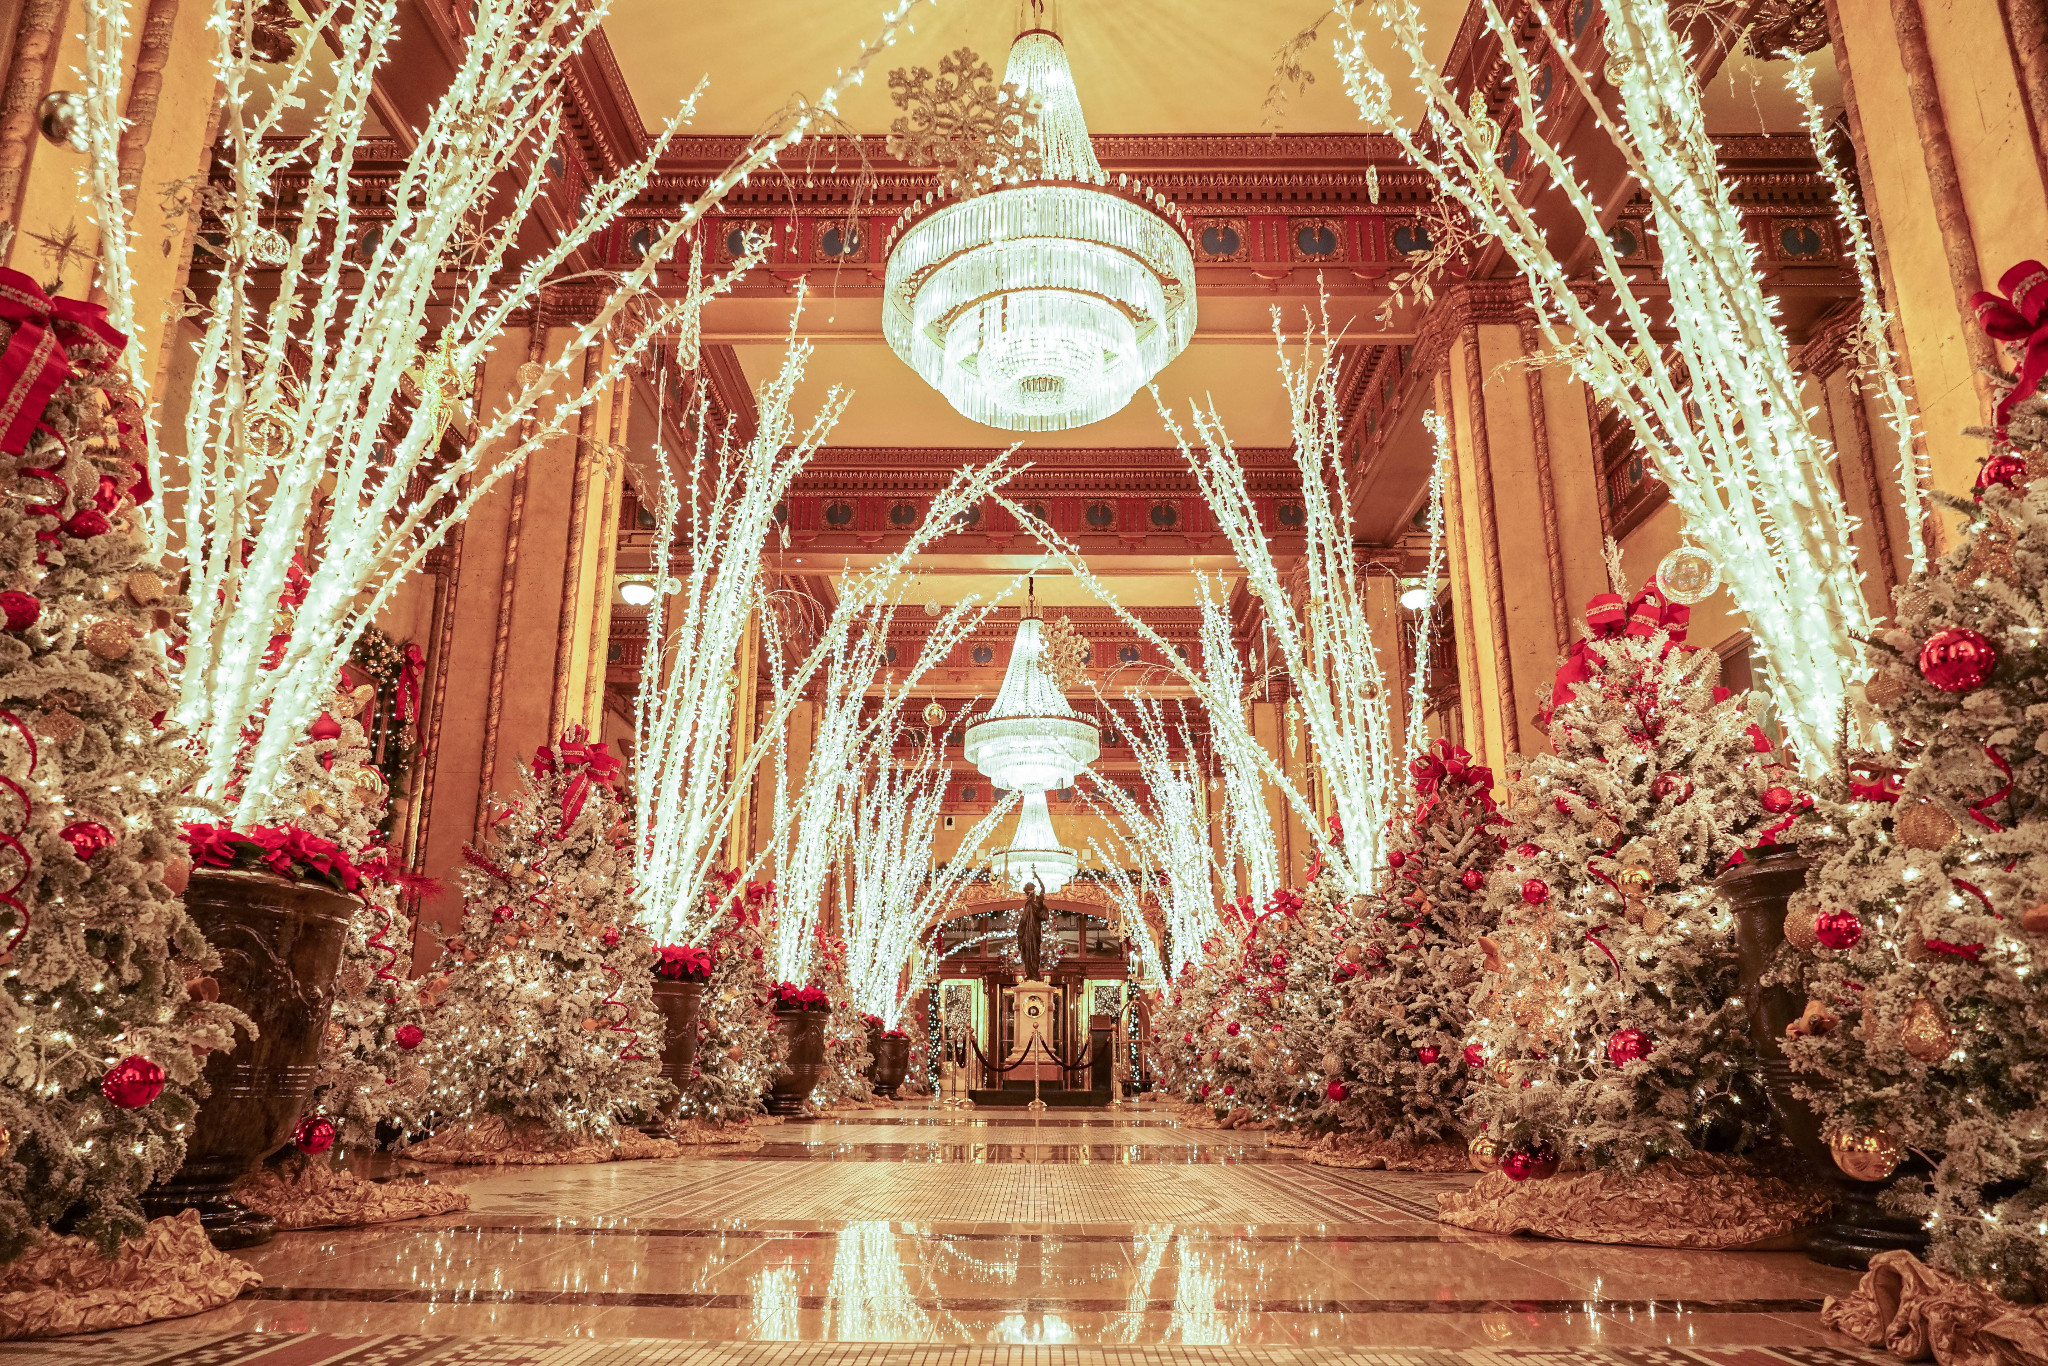 Wander the festive lobby at the Roosevelt Hotel for a free holiday treat. (Photo: Paul Broussard)